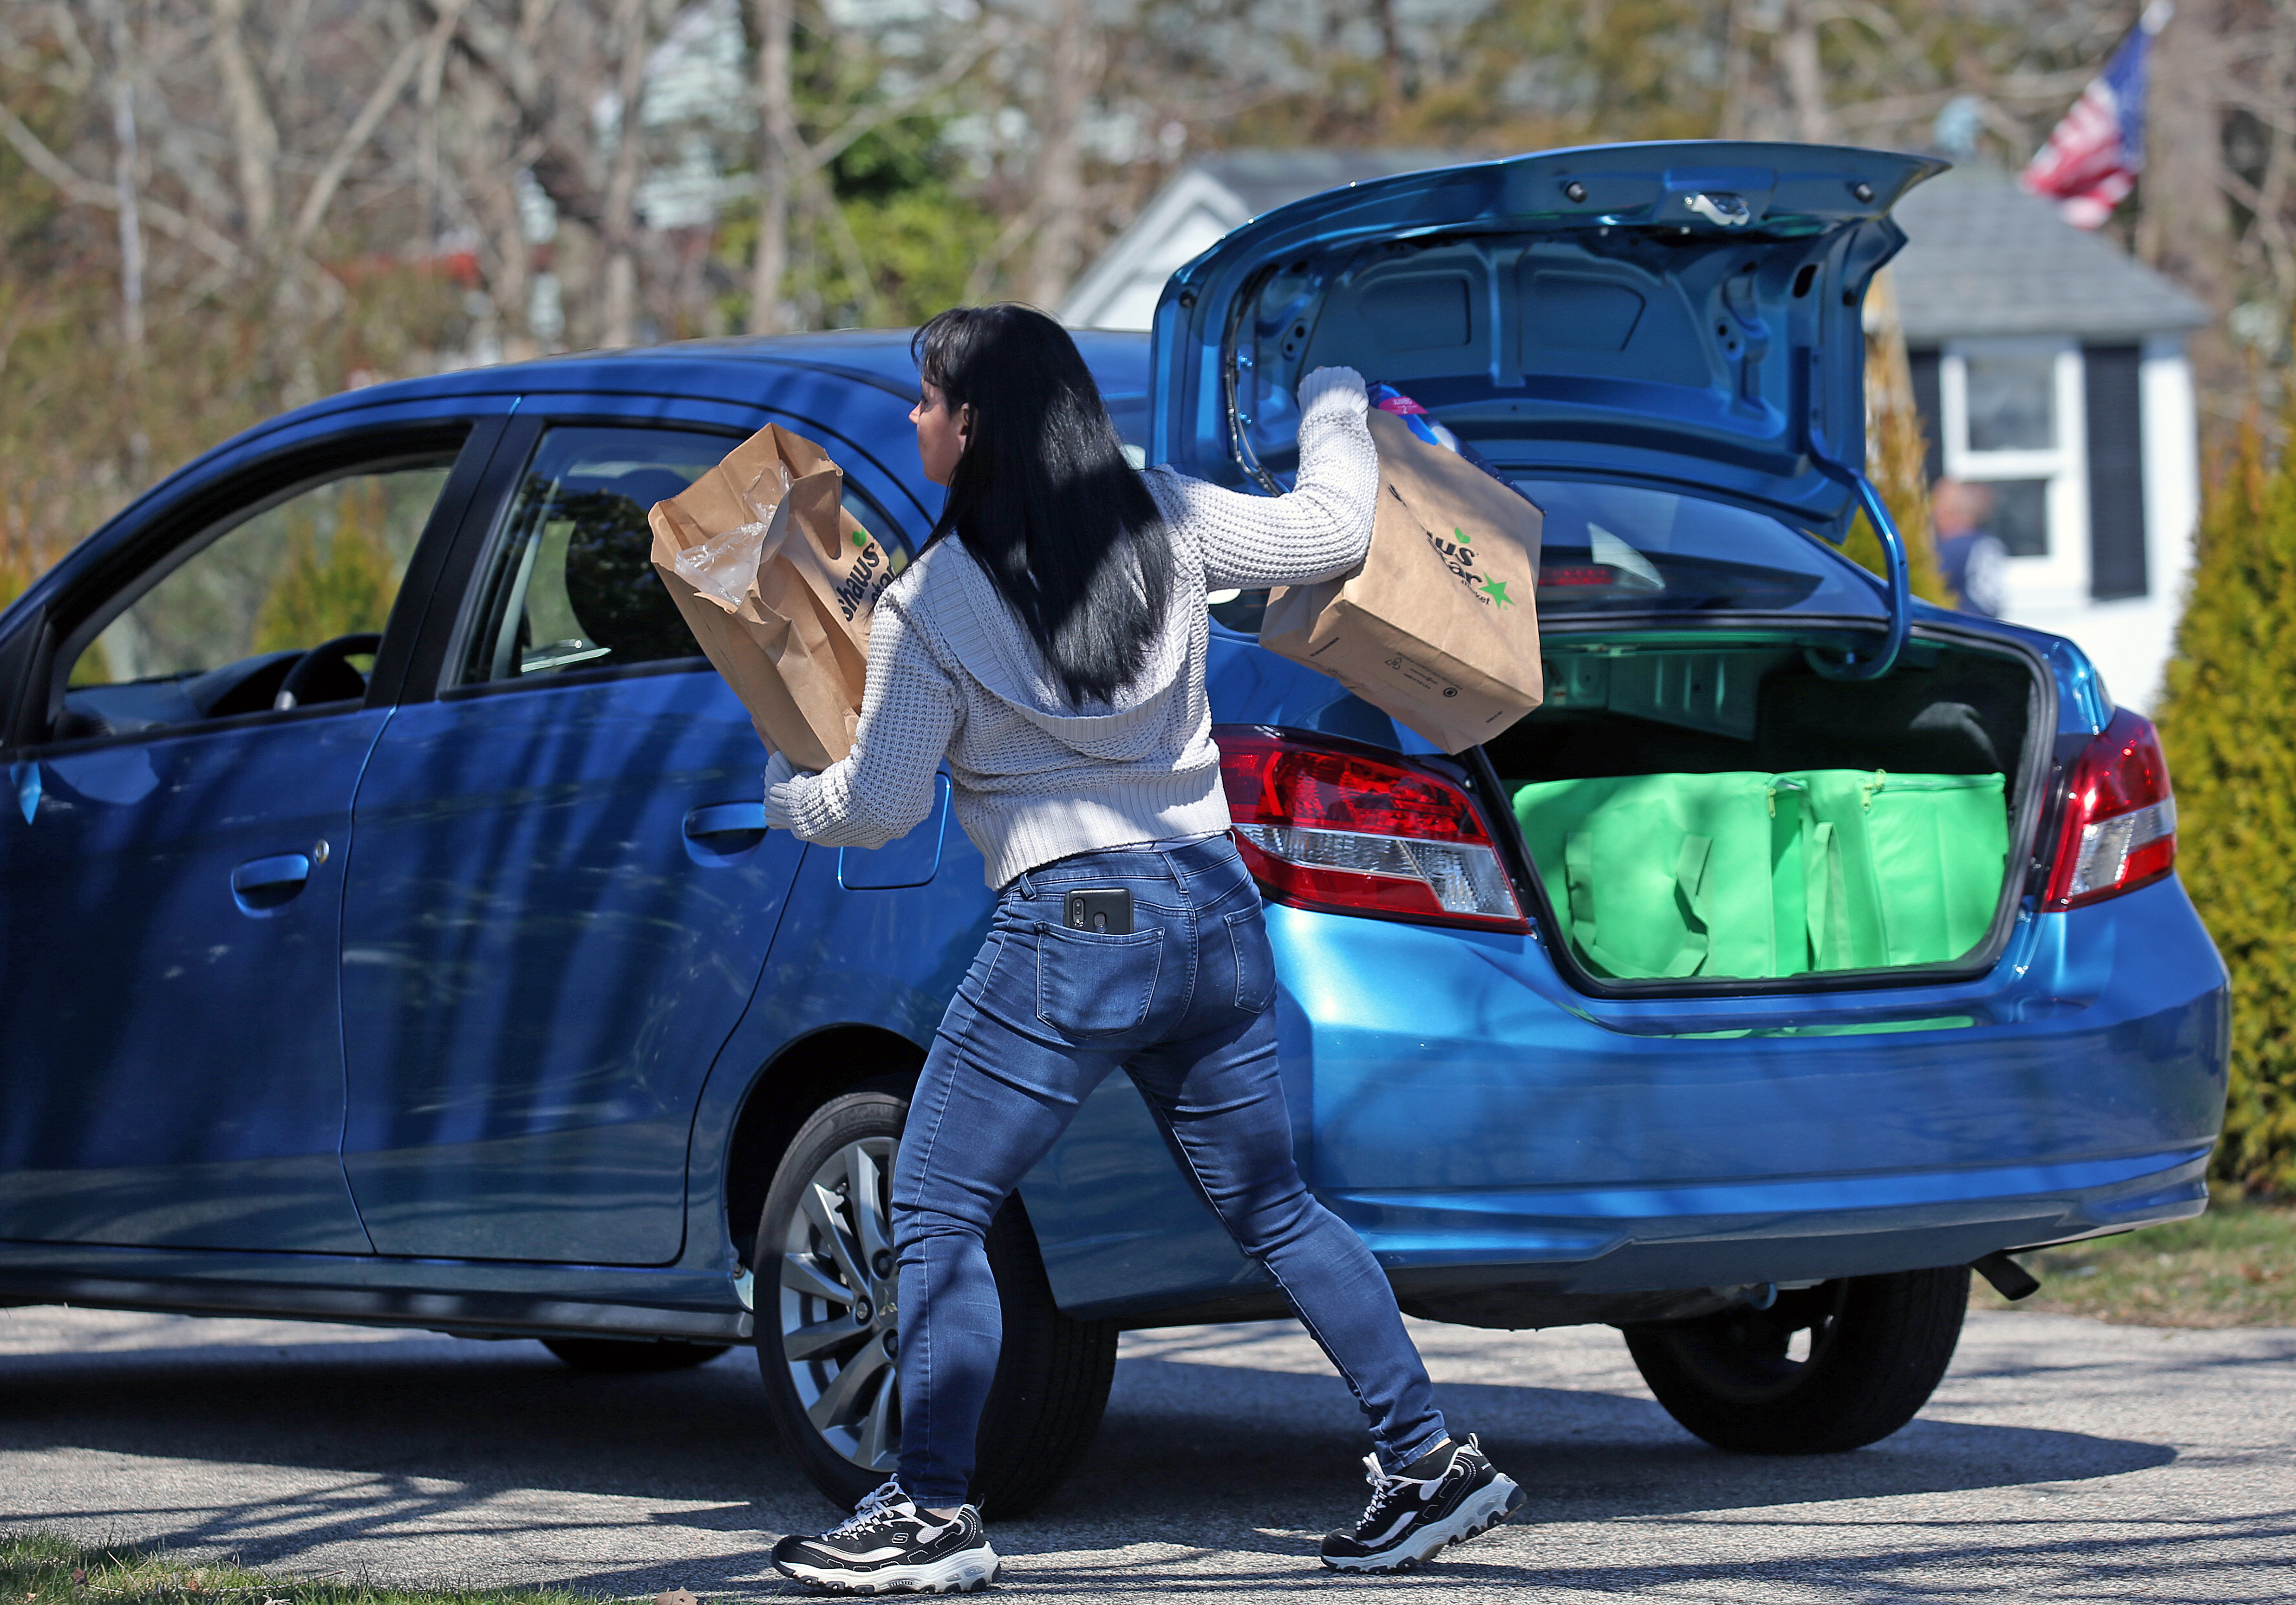 Instacart worker taking groceries out of her blue car's trunk